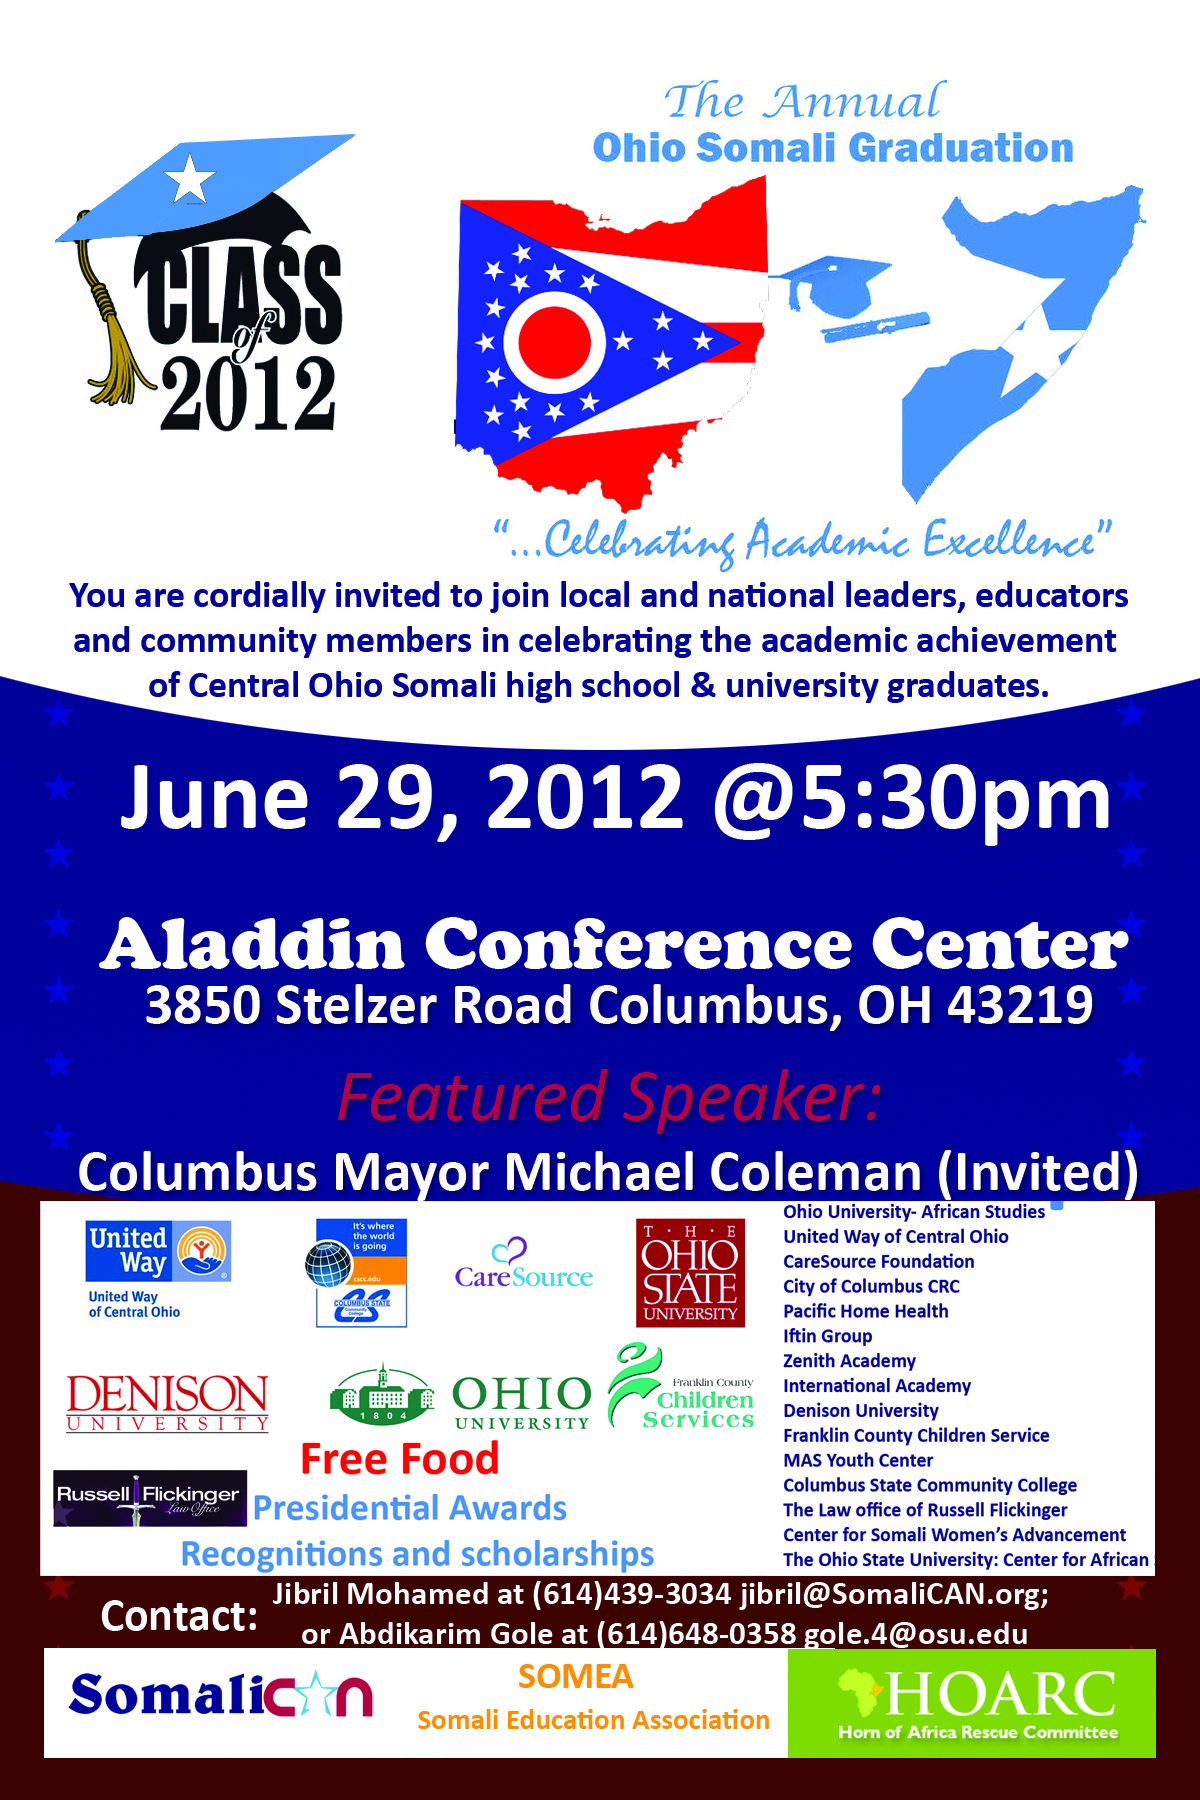 The third annual ohio somali graduation teachers workshop